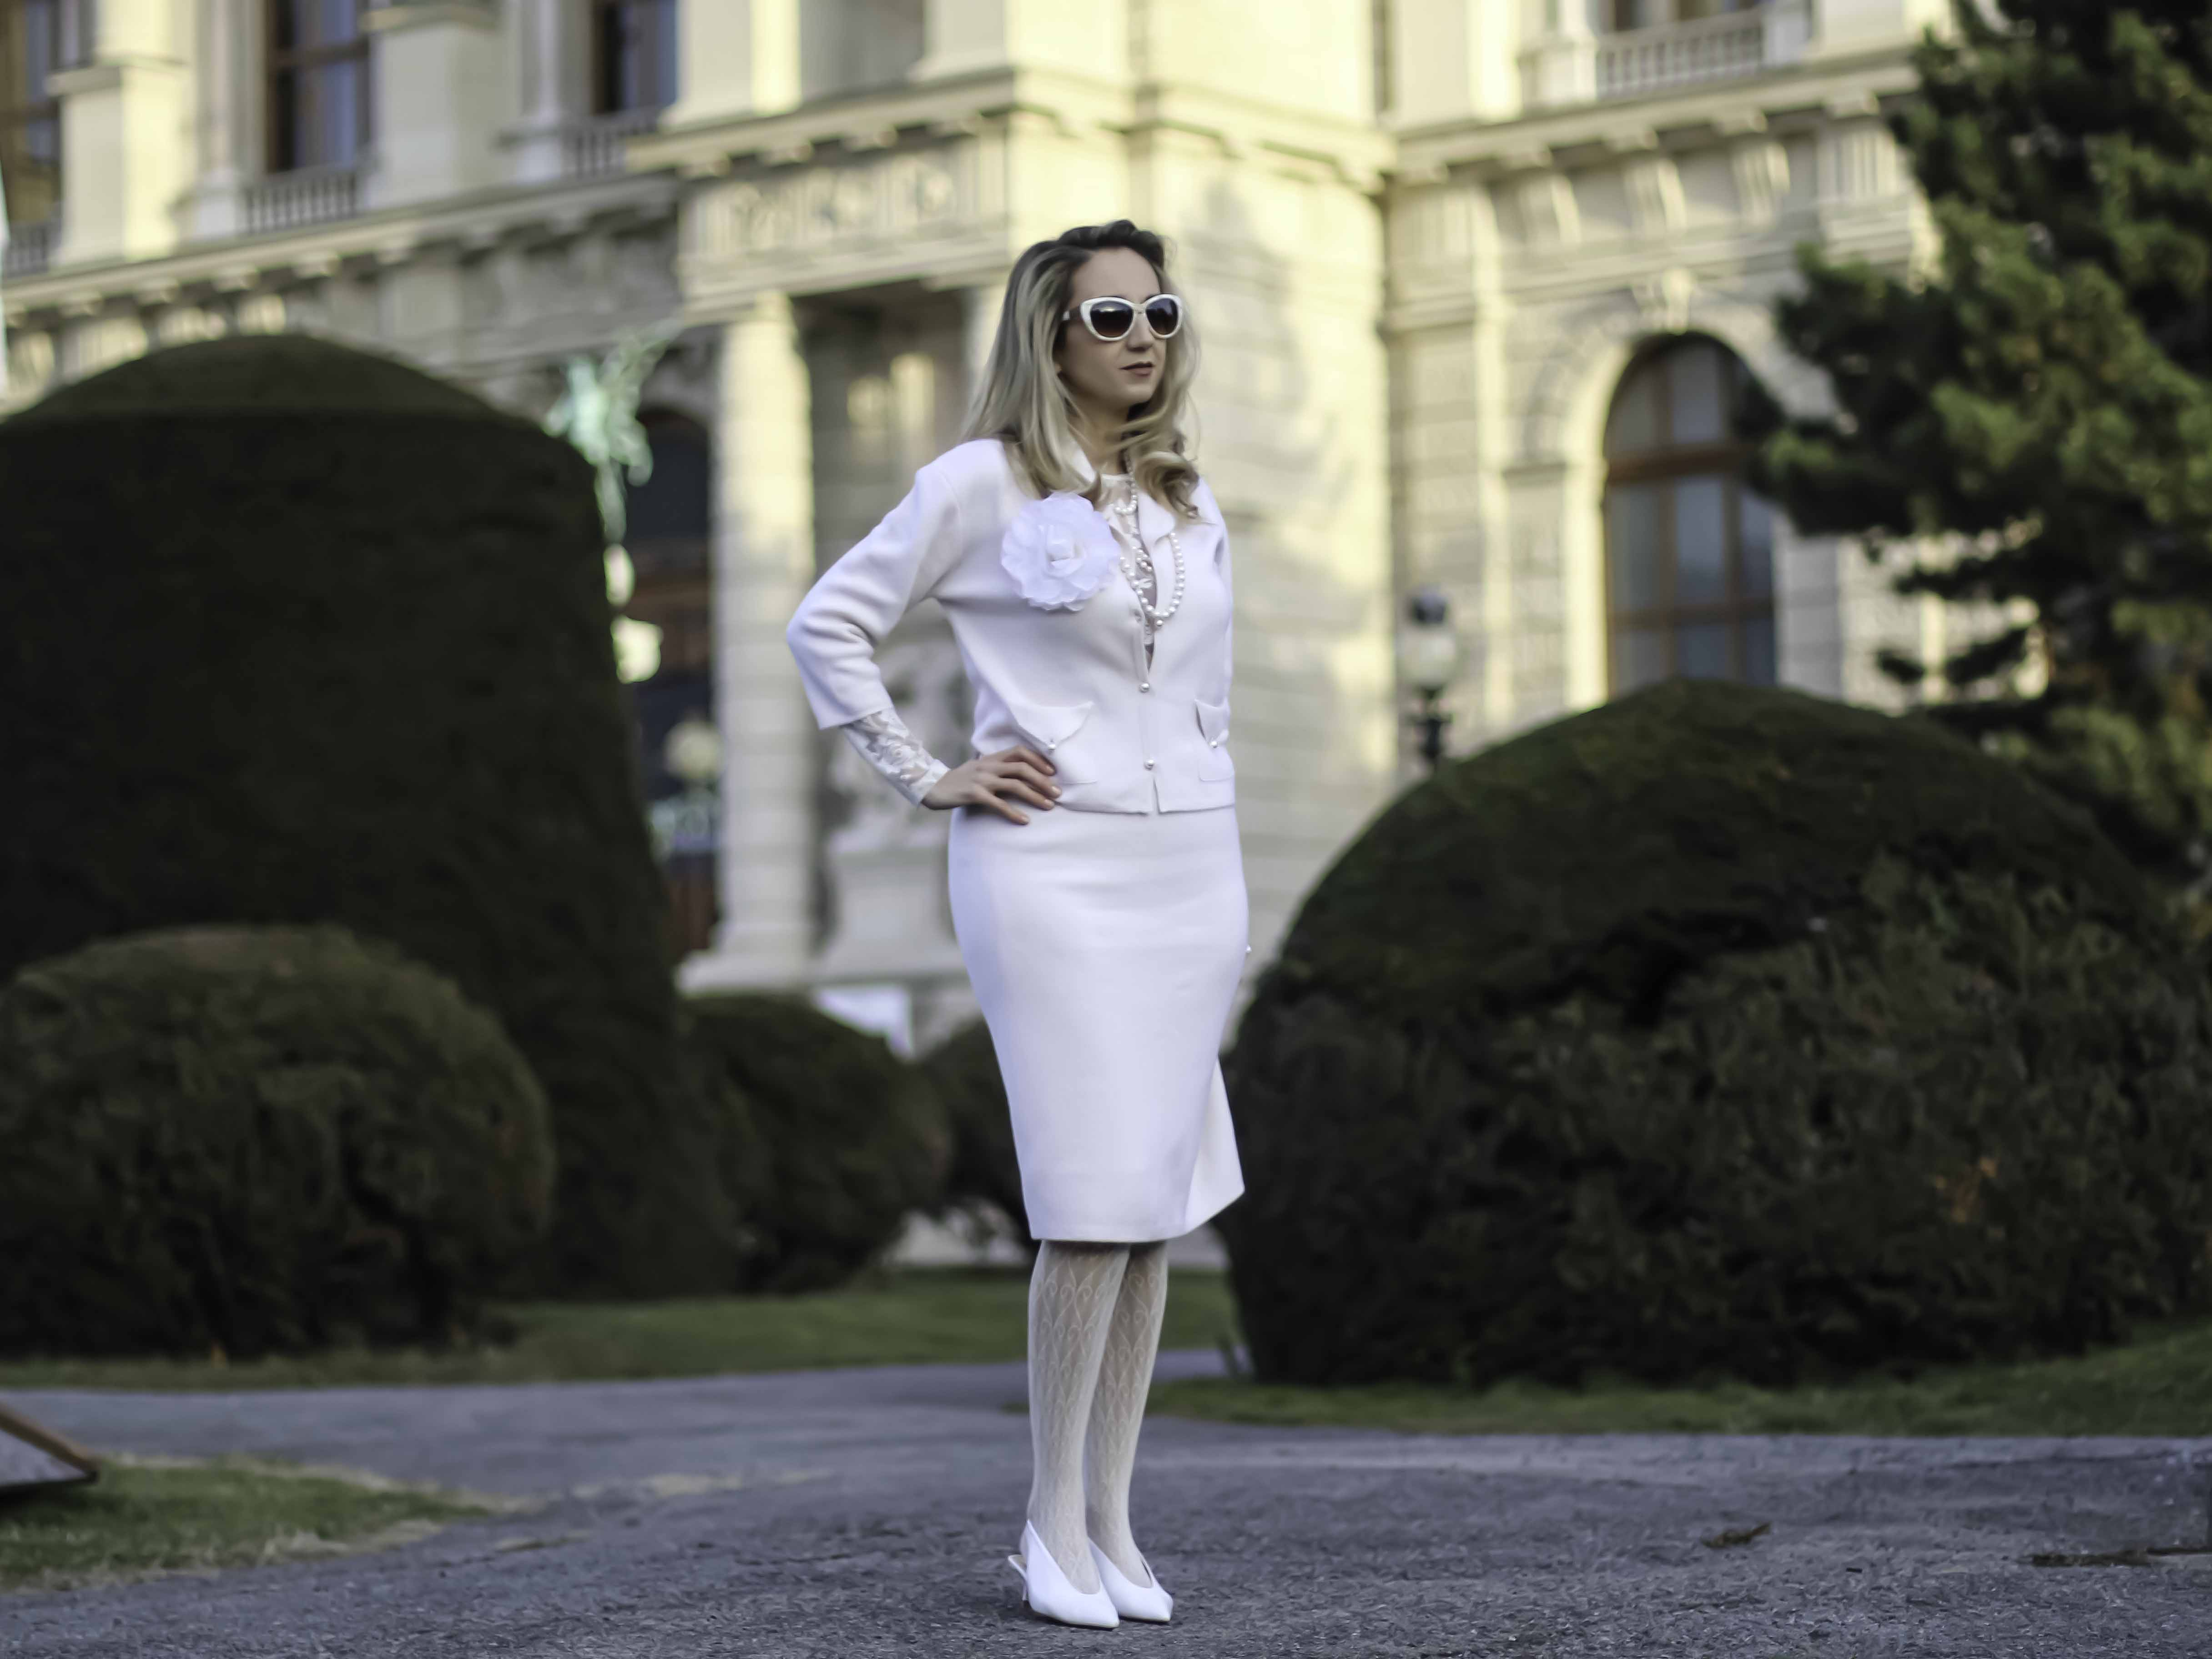 colourclub-fashionblog-vienna-elegant-outfit-cashmere-kitty-montgomery-chanel